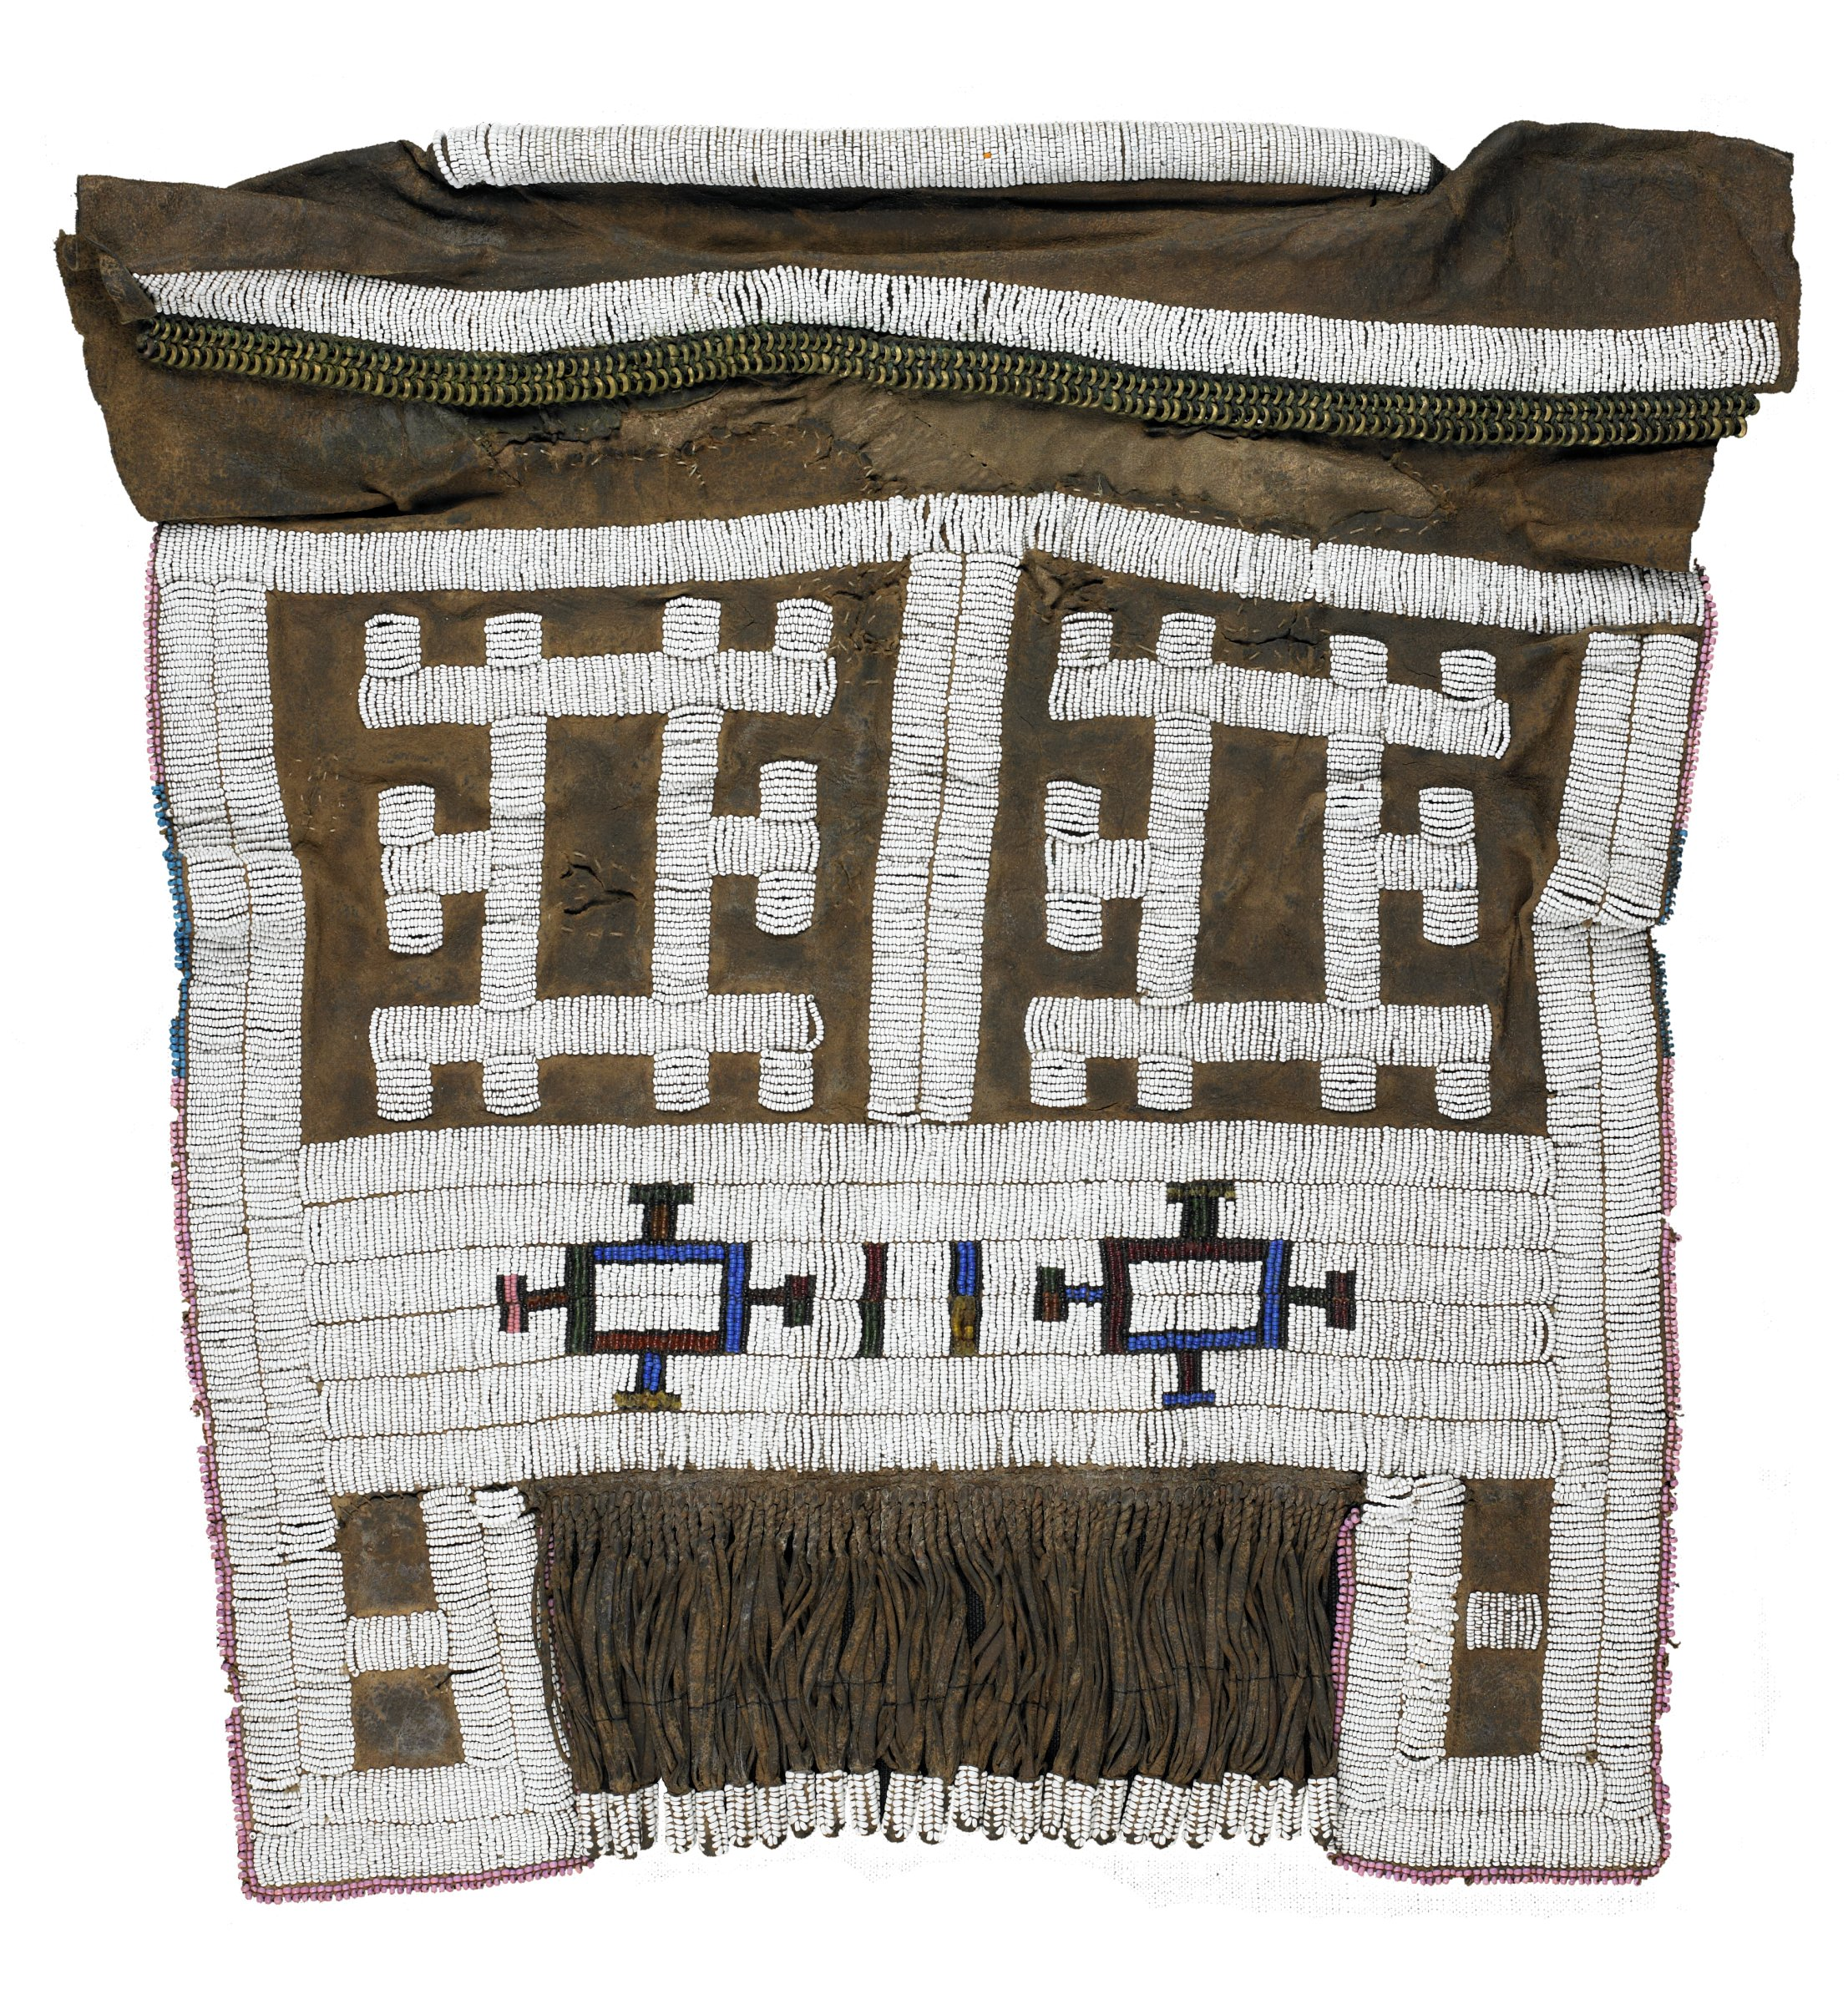 Rectangular hide apron adorned with glass beads -- predominantly white, but borders and certain patterns in pink, green, blue, and burgundy beads. Waistband is folded over and adorned with beads and small metal rings -- one section is stuffed with straw. Panel of beaded fringe at bottom center of panel.